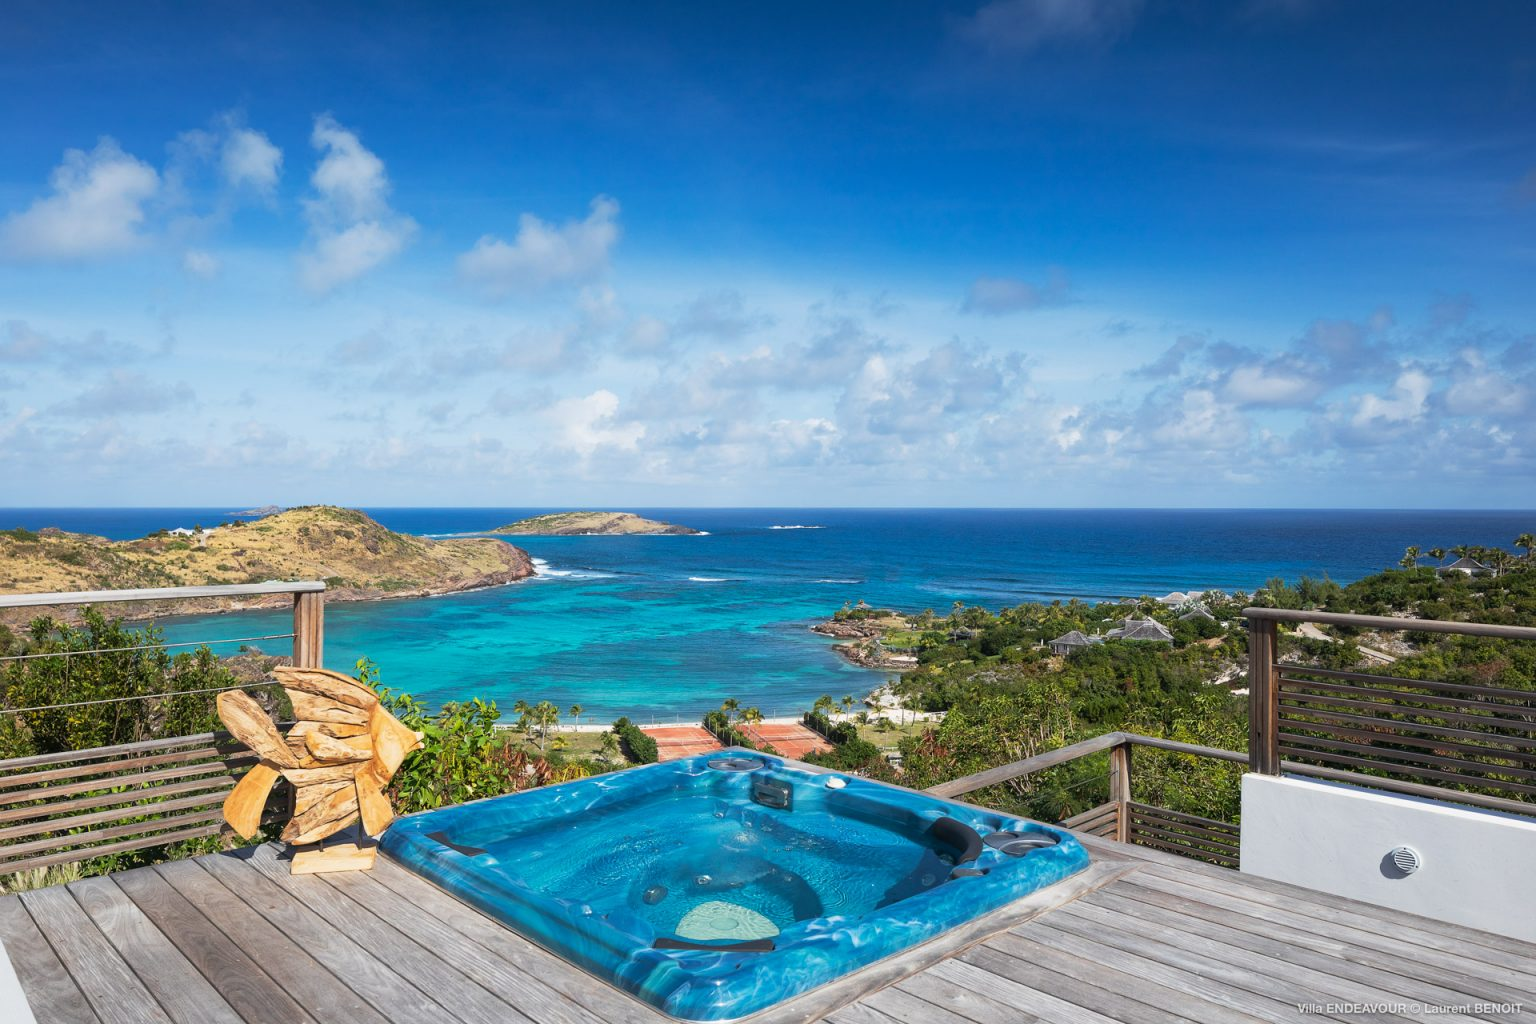 Villa Endeavour - Peaceful Villa Rental St Barth Toiny Seaview - Ocean view and Jacuzzi